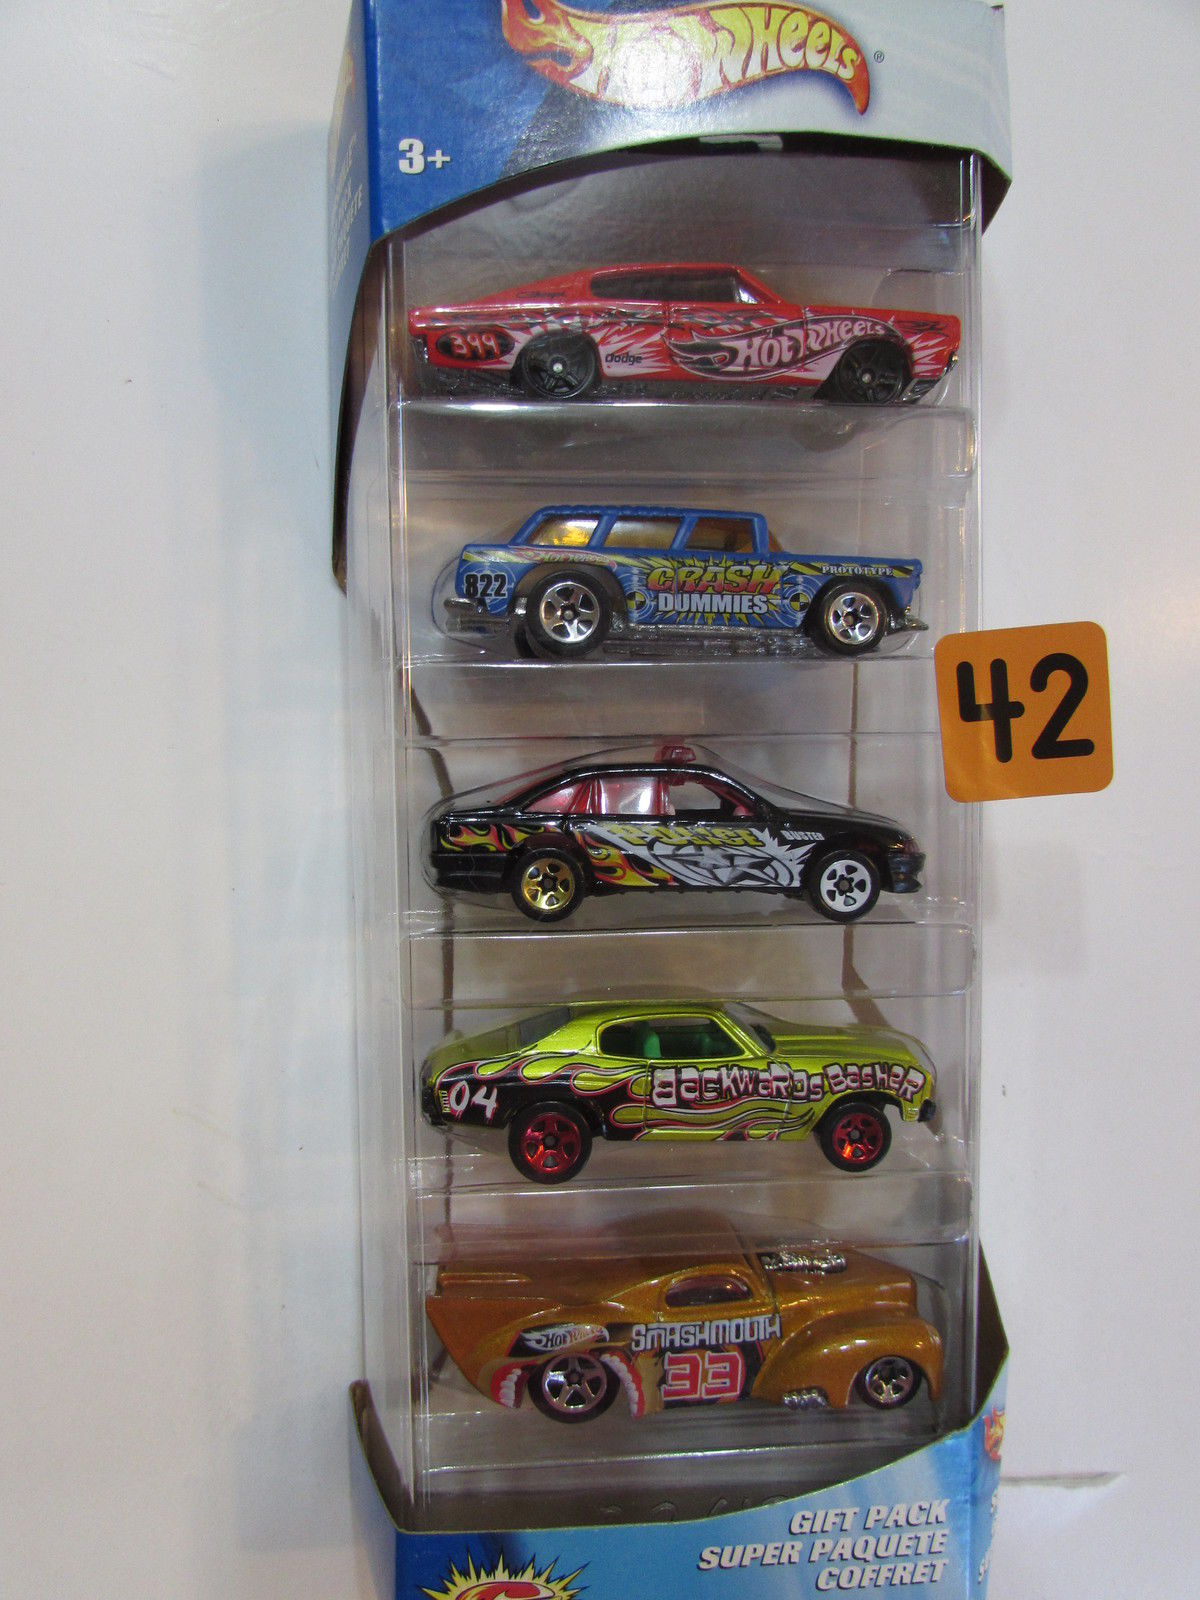 2002 HOT WHEELS SMASHVILLE - CHARGER - NOMAD - CHEVELLE - WILLYS 5 CAR PACK